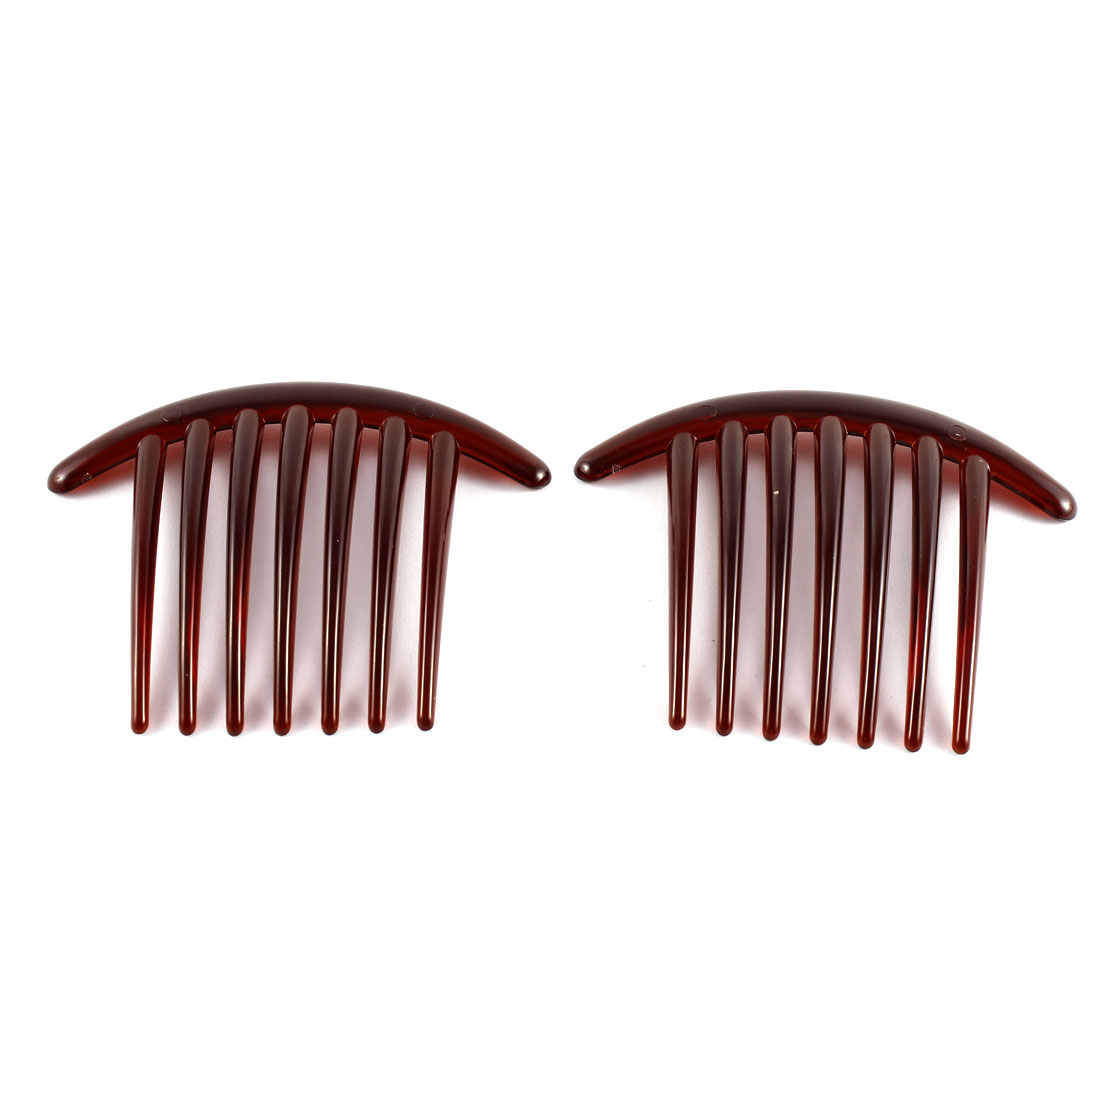 Lady Woman 7 Teeth Plastic Hair Comb Clip Hairclip Clamp Dark Red 2 Pcs